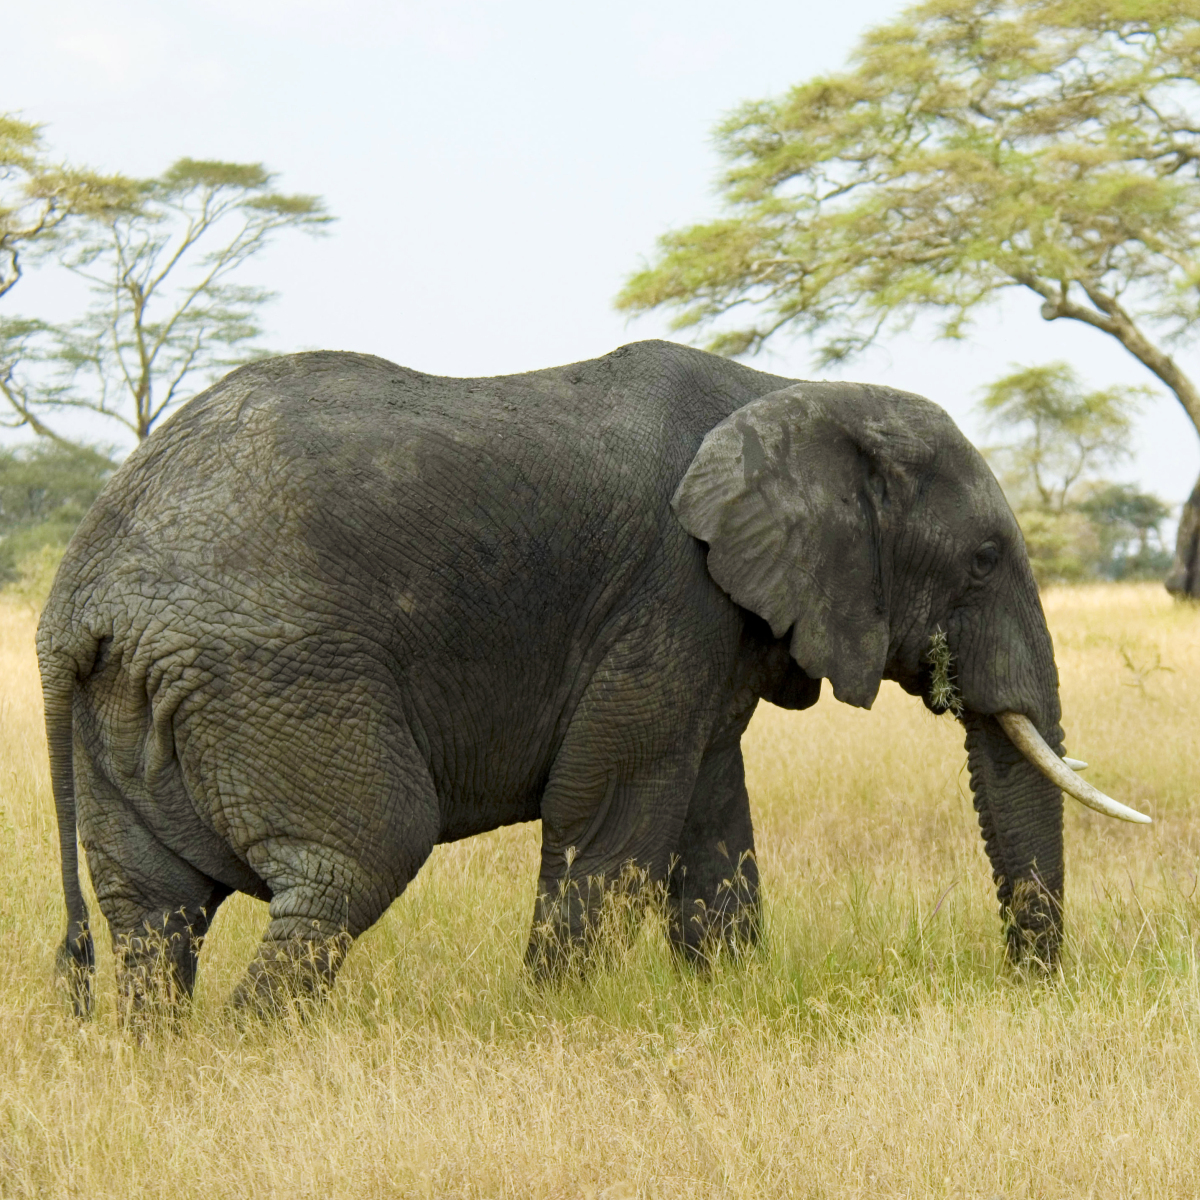 Elephants have extra copies of a gene that protects against cancer.